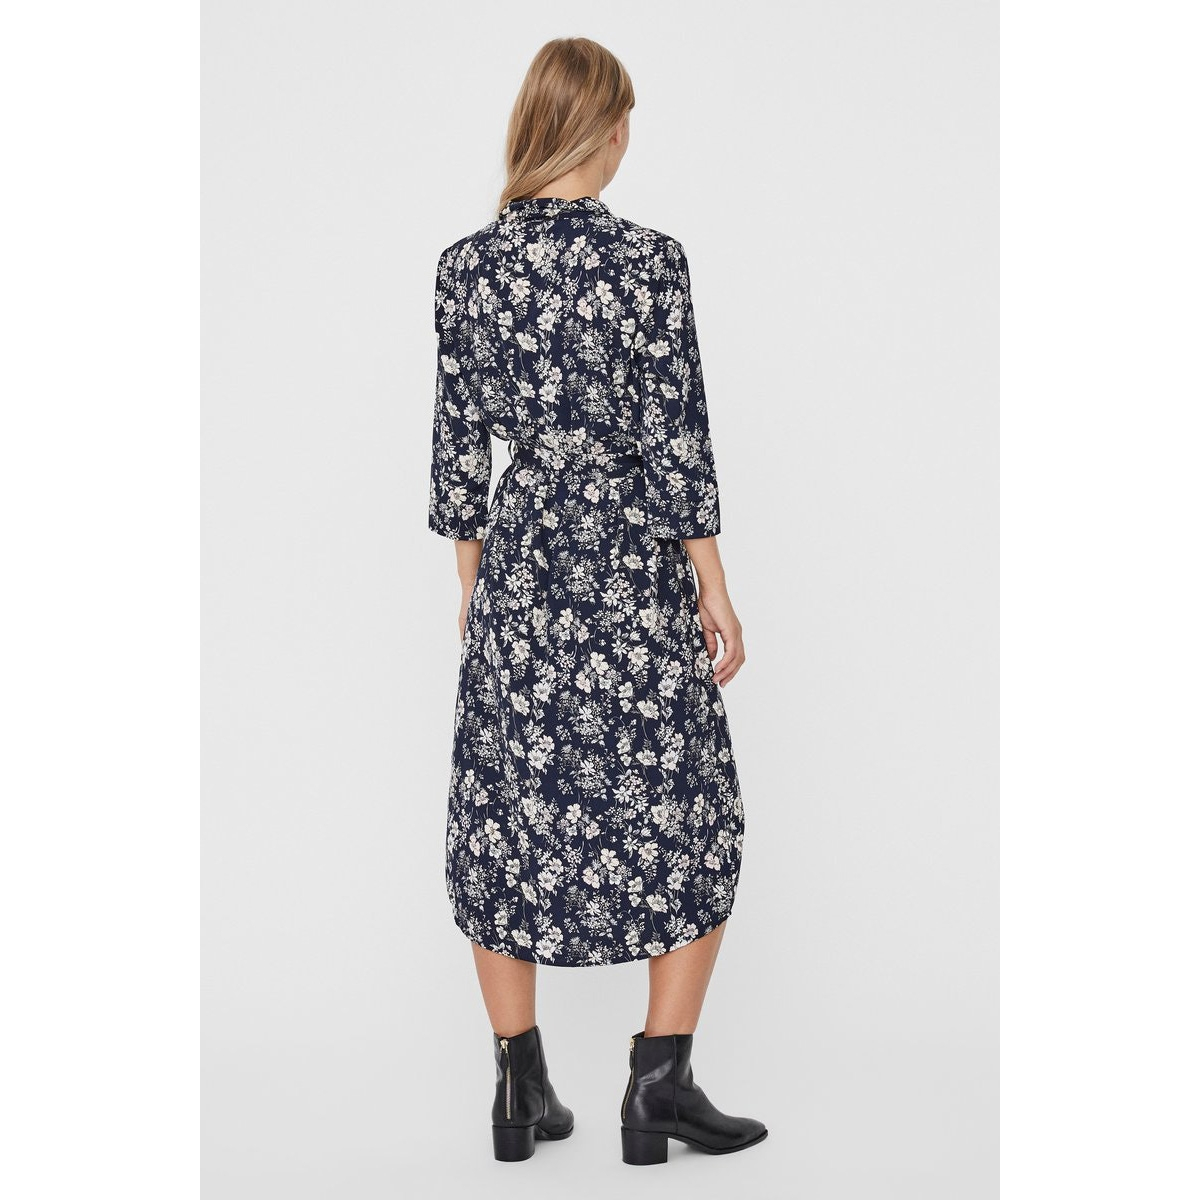 vmdiana 3/4 calf shirt dress wvn da 10227859 vero moda jurk night sky/diana